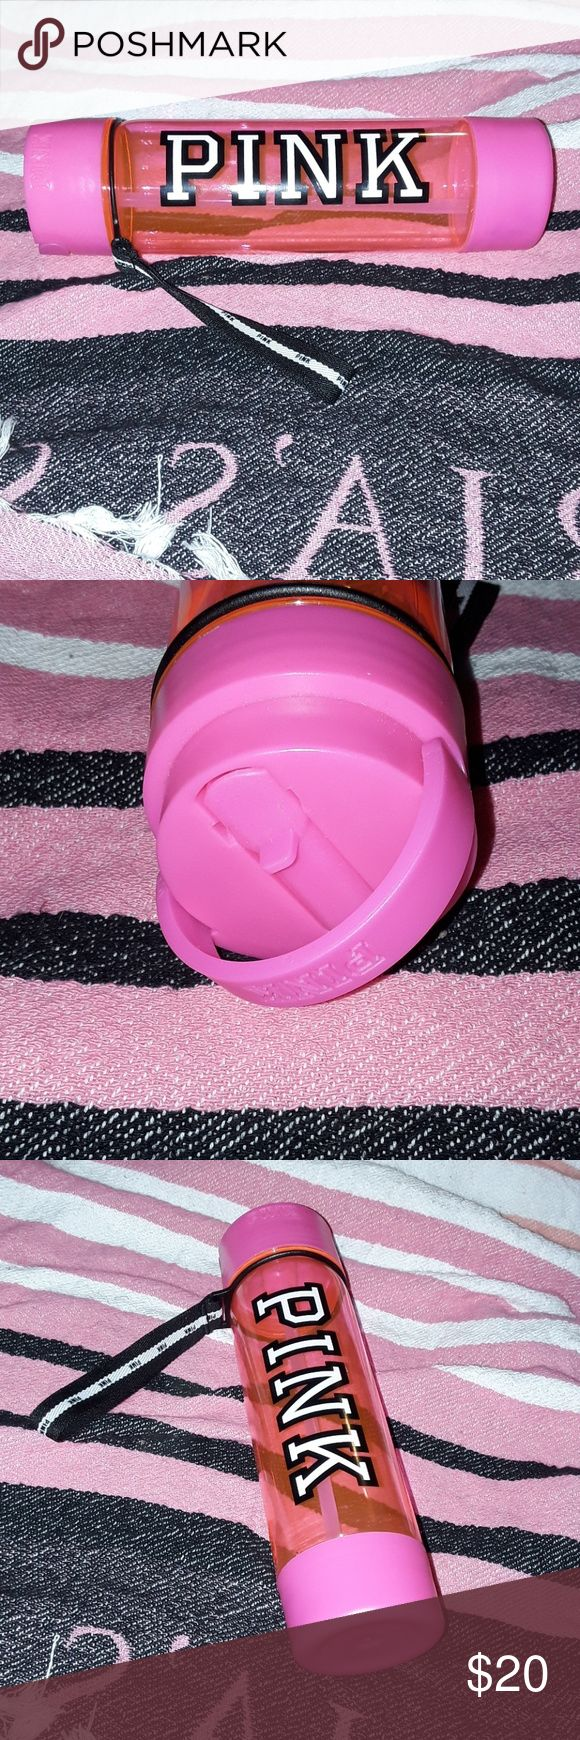 Victorias secret Pink water Bottle ❣ Brand New bright hot pink bottle from victorias secret 🎀 best offer accepted PINK Other